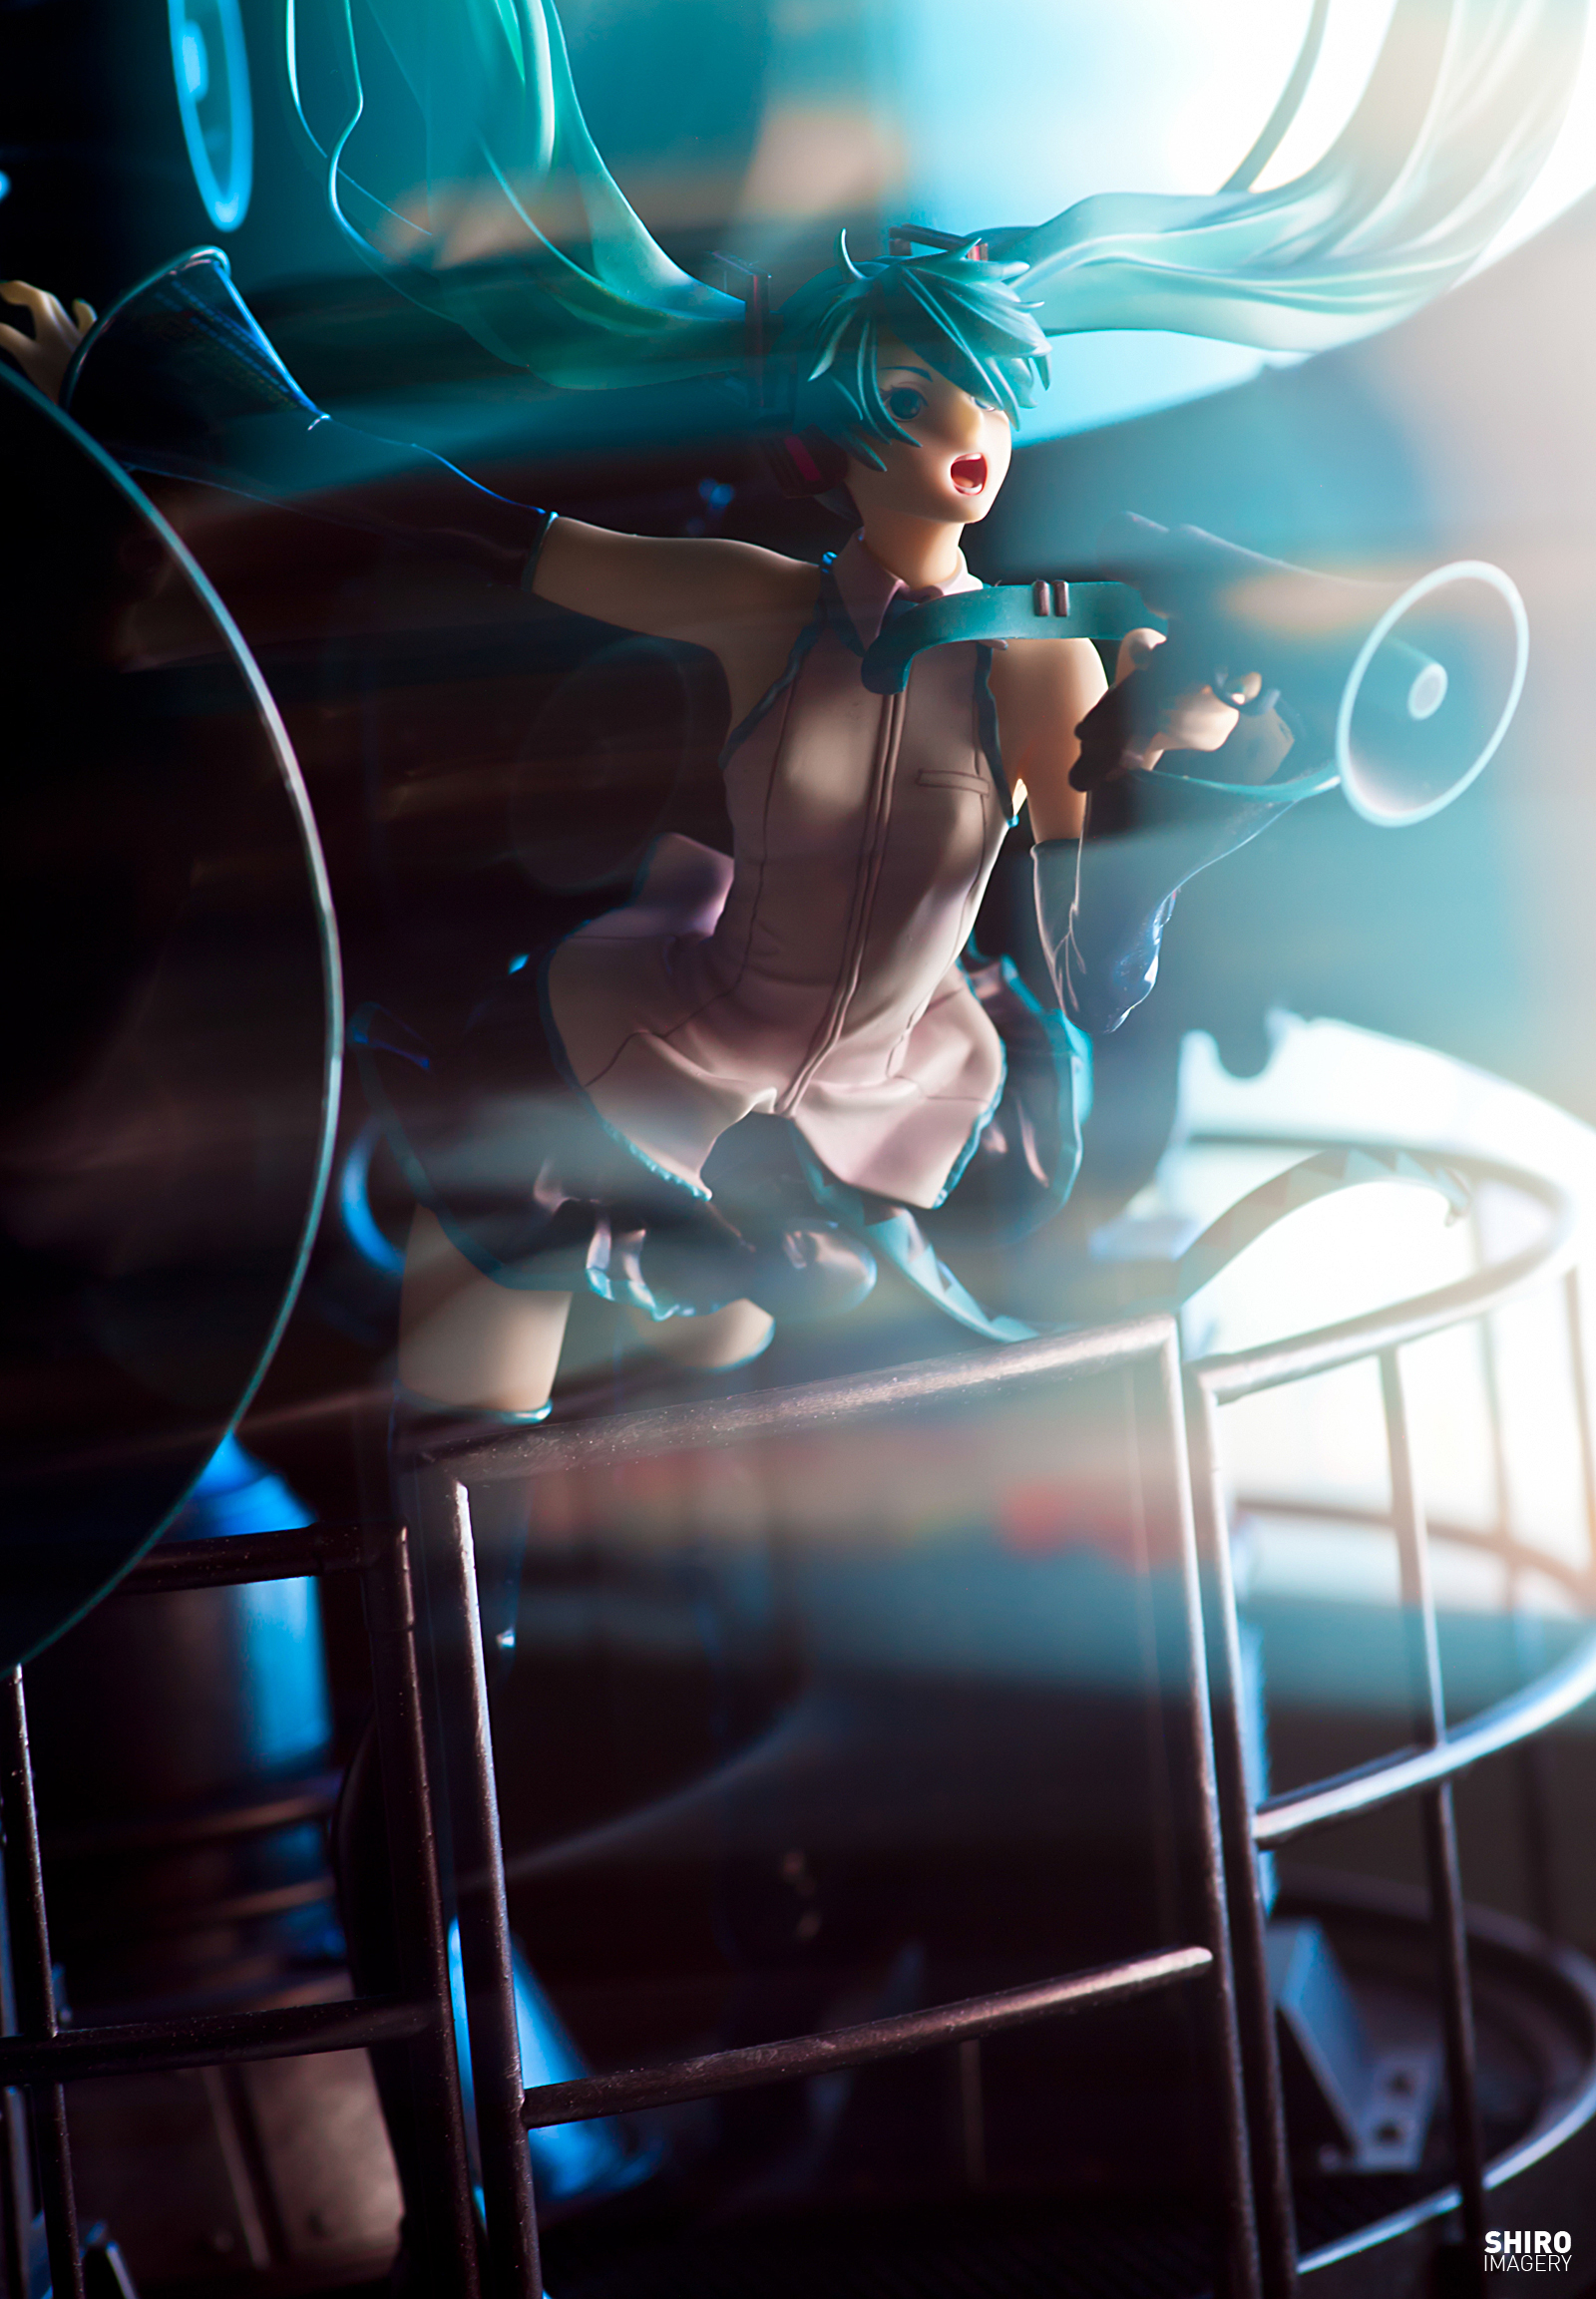 vocaloid detached_sleeves elaborate_base cyan_hair blue_eyes aqua_hair hatsune_miku good_smile_company aqua_eyes 1/8 based_on_artwork dynamic_pose miwa_shirou 2012 iwanaga_sakurako female,